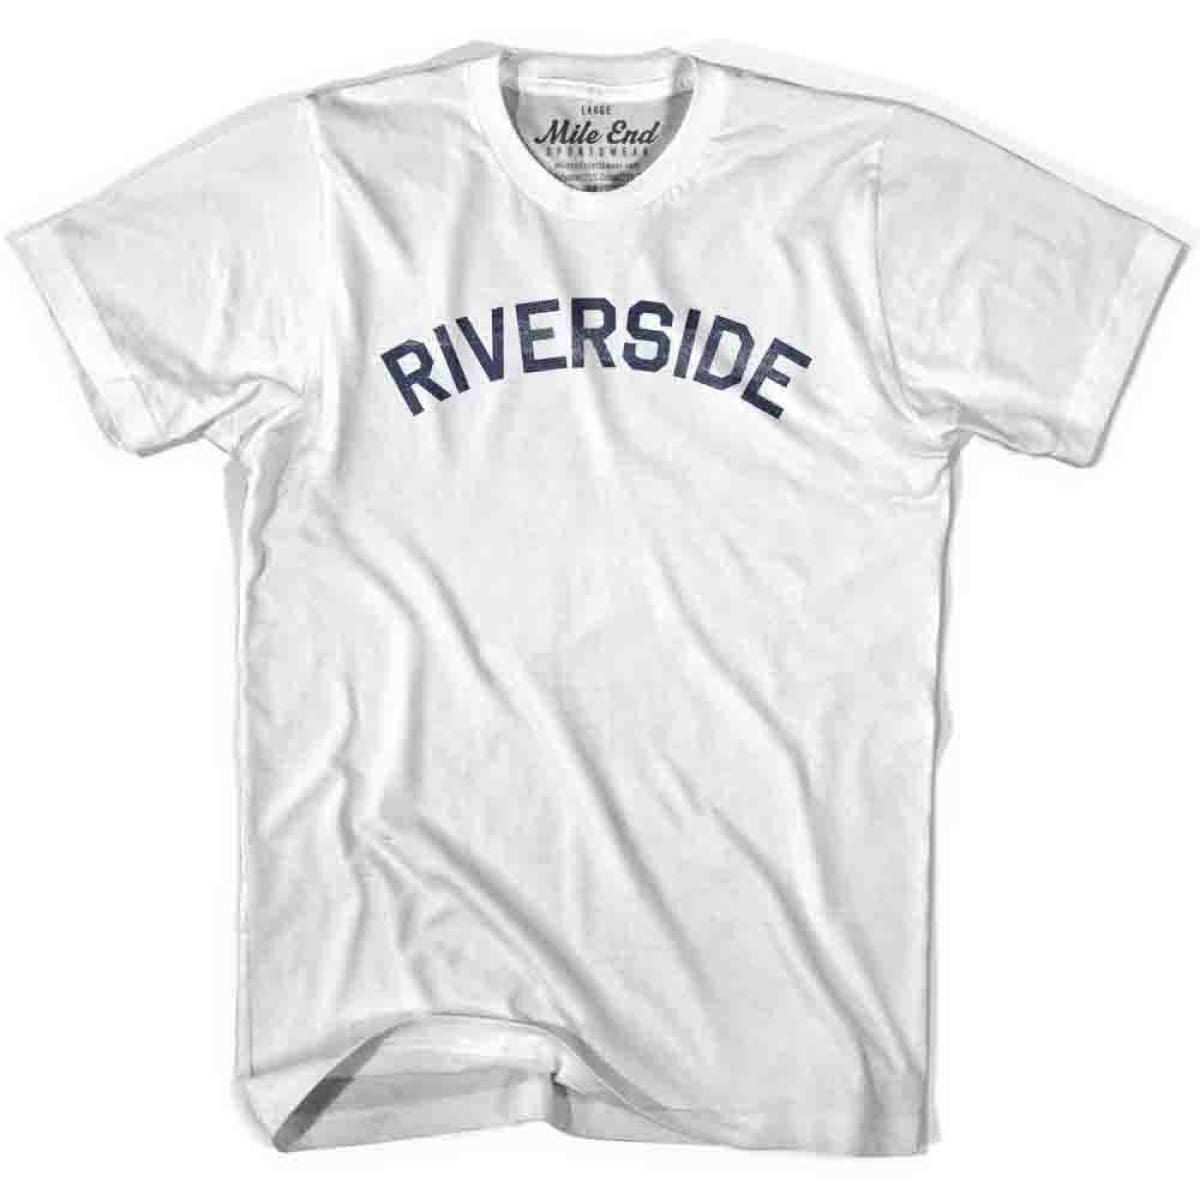 Riverside City Vintage T-shirt - White / Youth X-Small - Mile End City